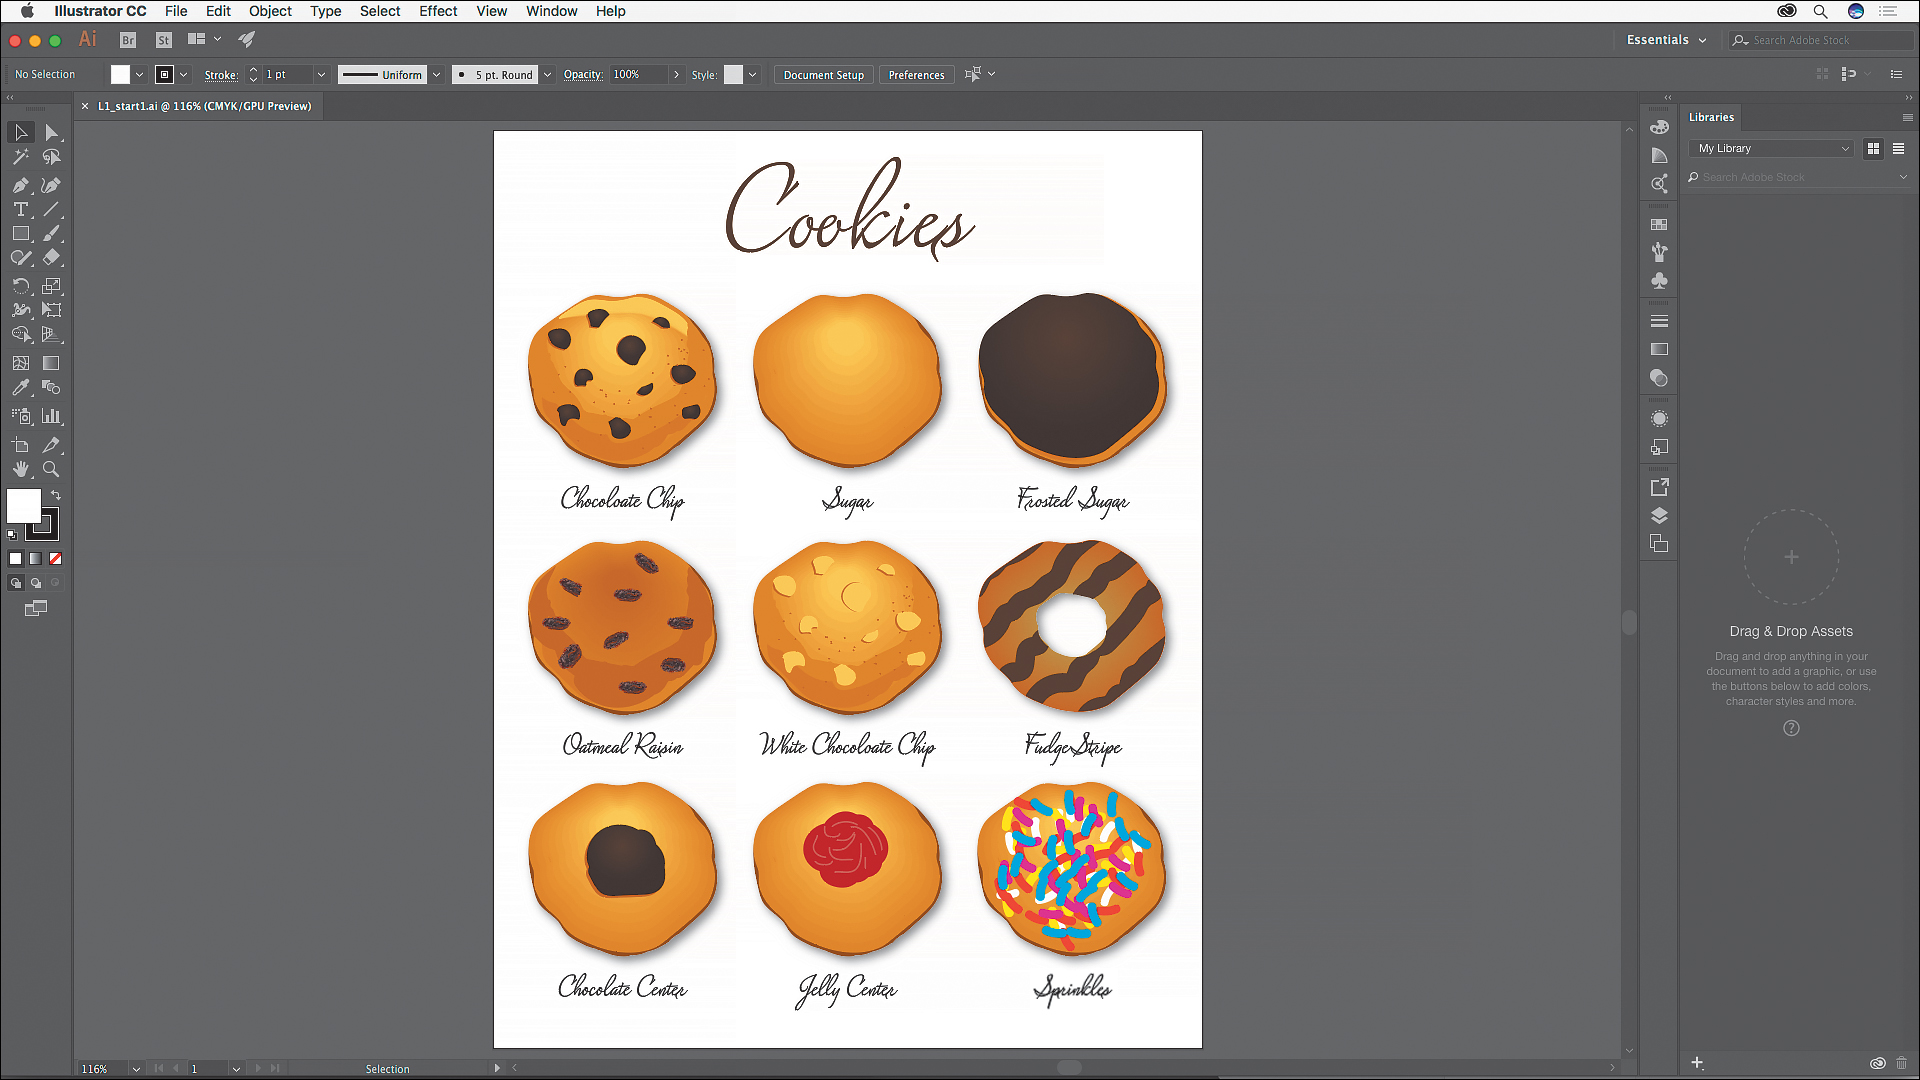 The flat user interface of Illustrator CC